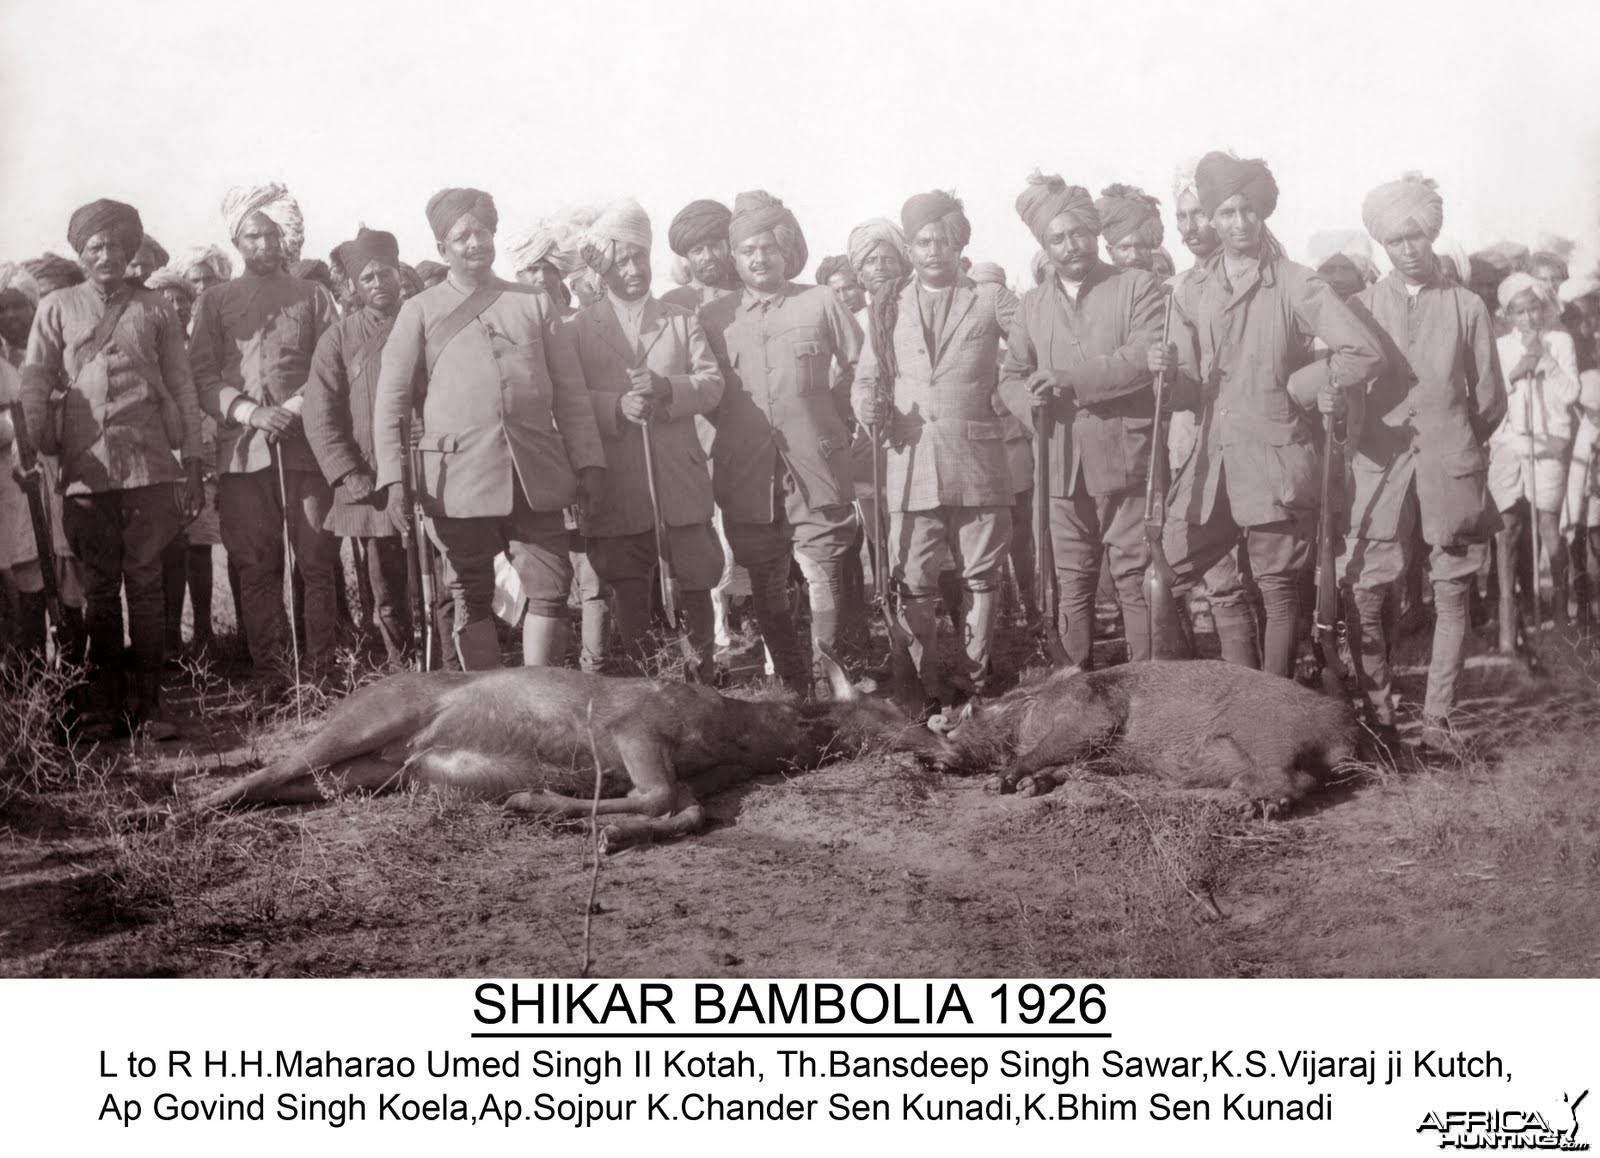 Hunting in Bambolia - 1926